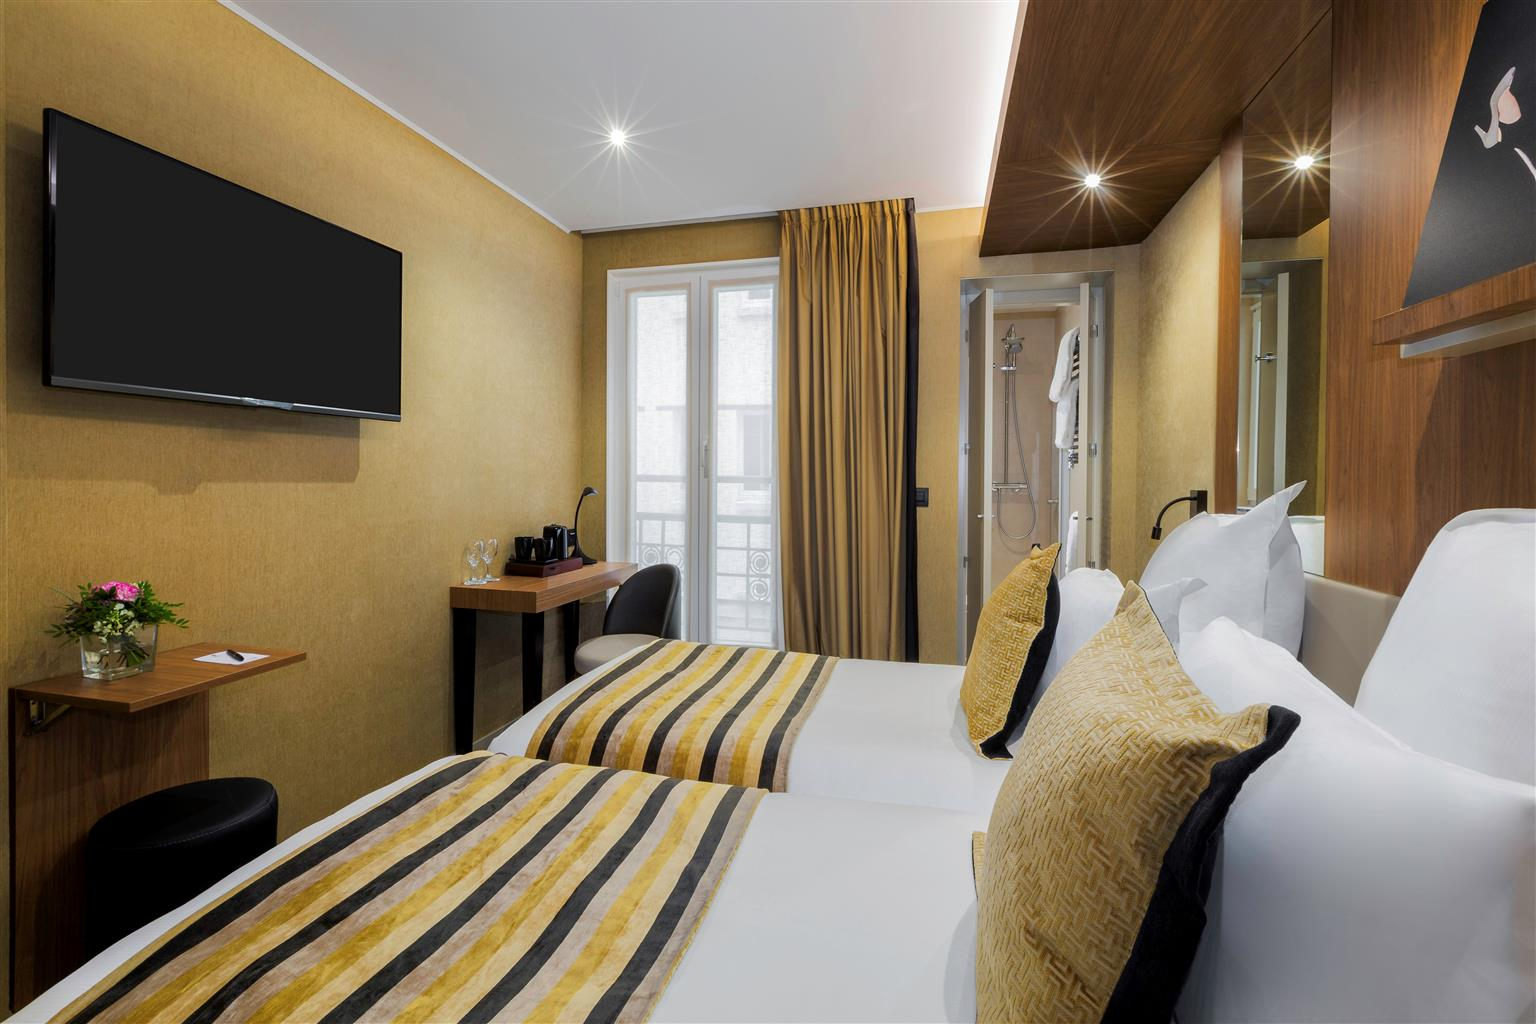 Best western hotel le 18 paris for Hotel best western paris